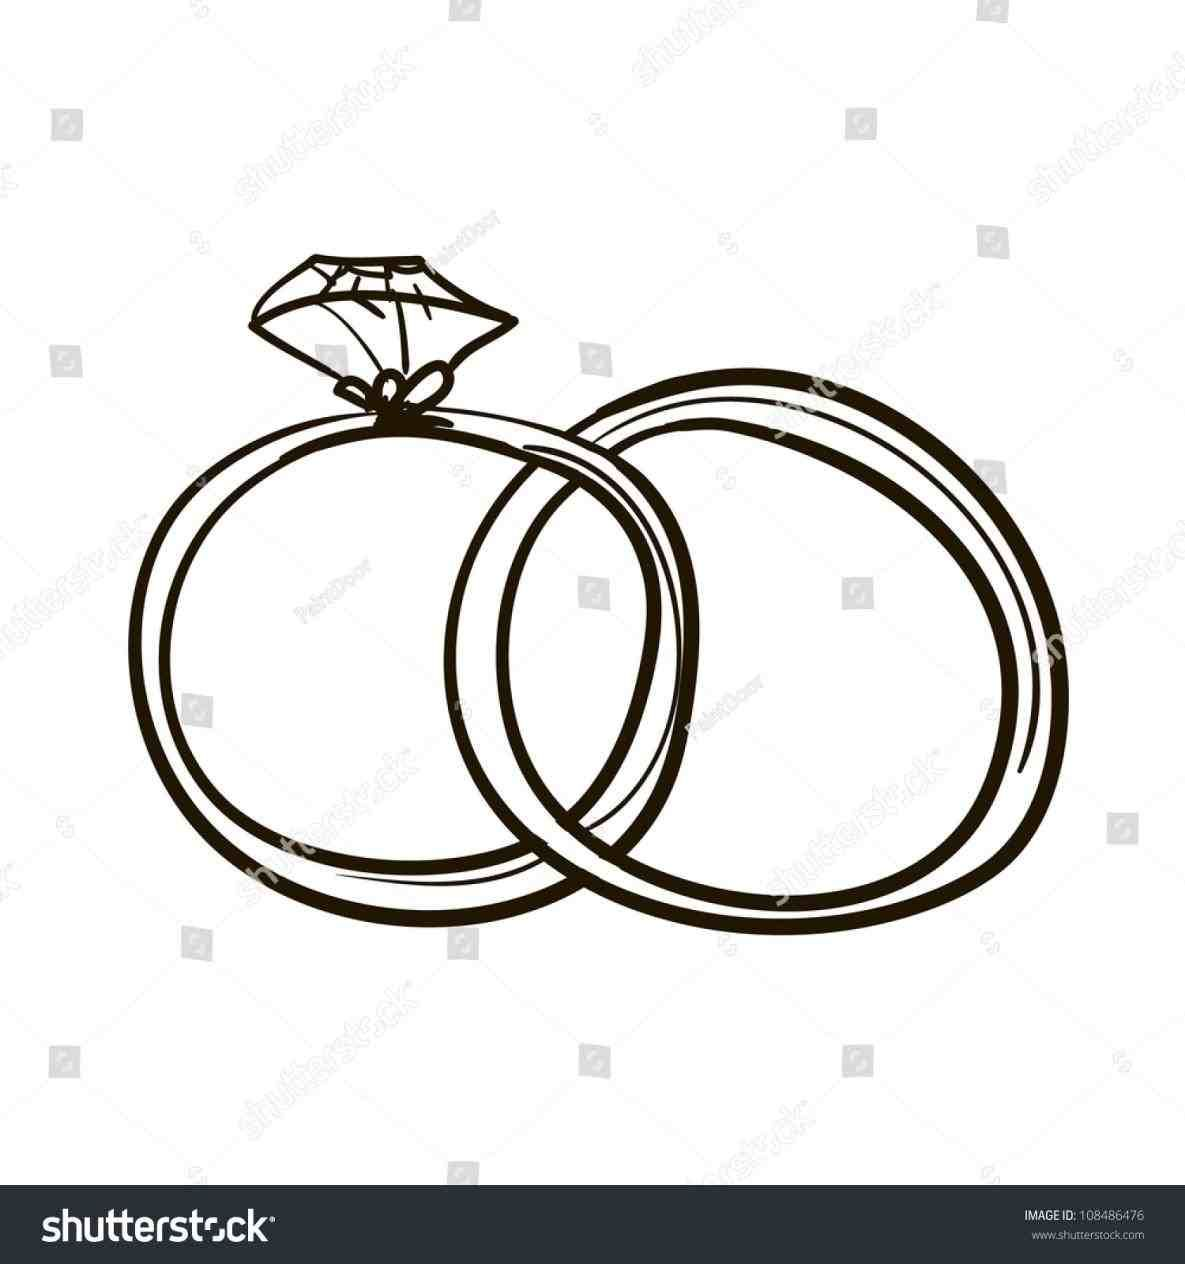 vector black and white stock Rings drawing wedding band. Simple ring weddings